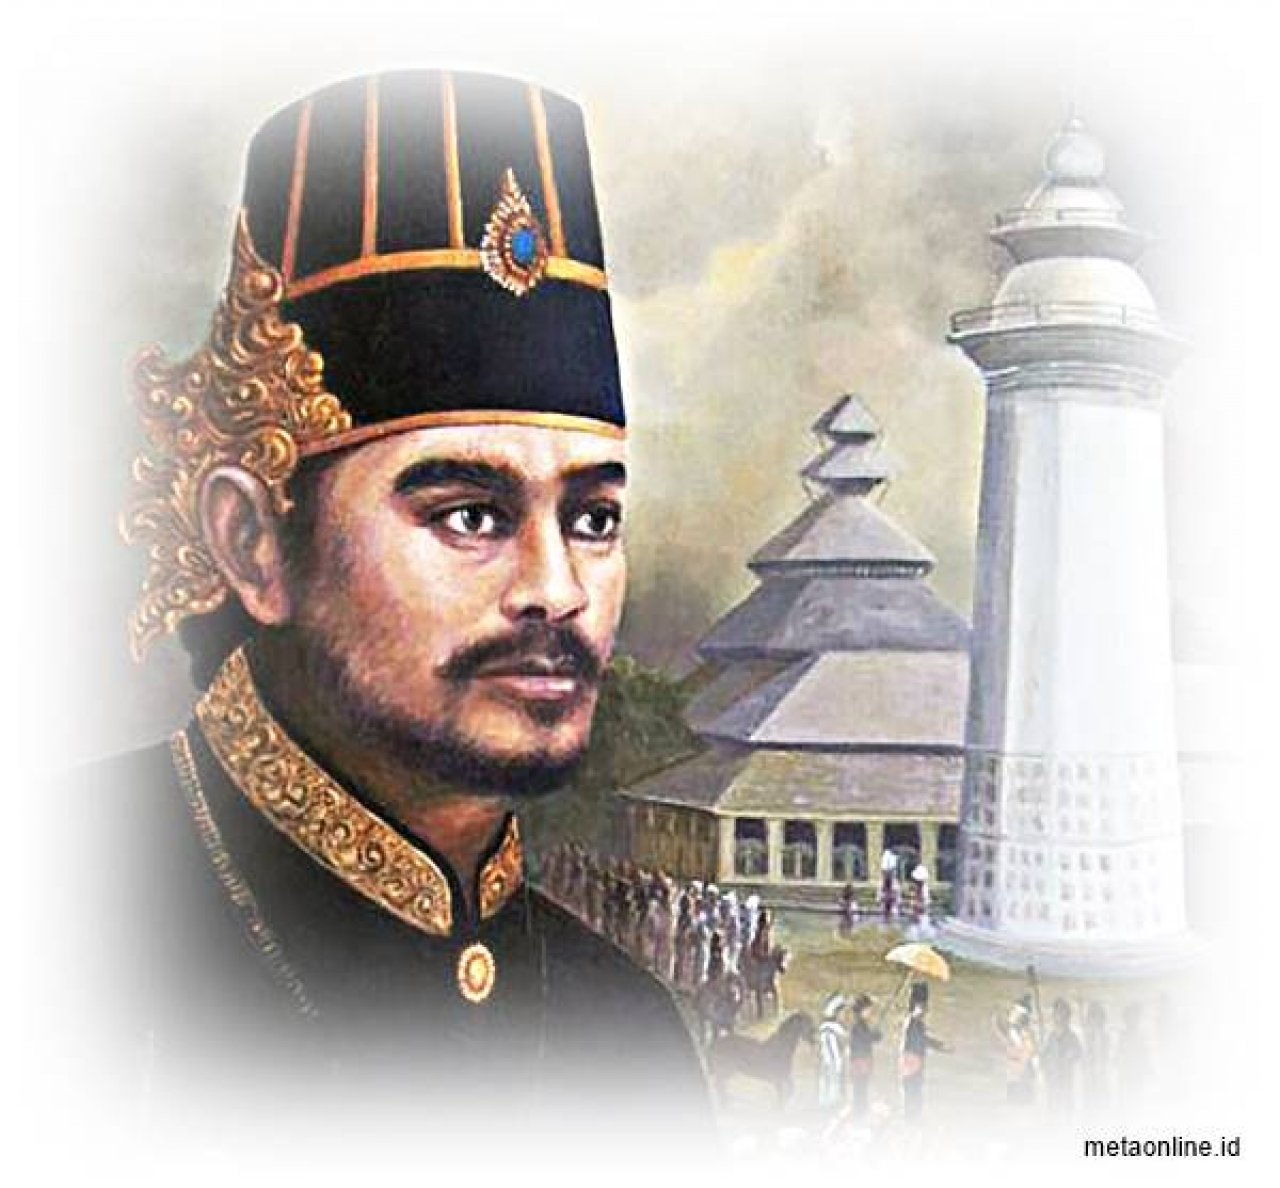 Sultan Maulana Hasanuddin, Founder of The Banten Kingdom